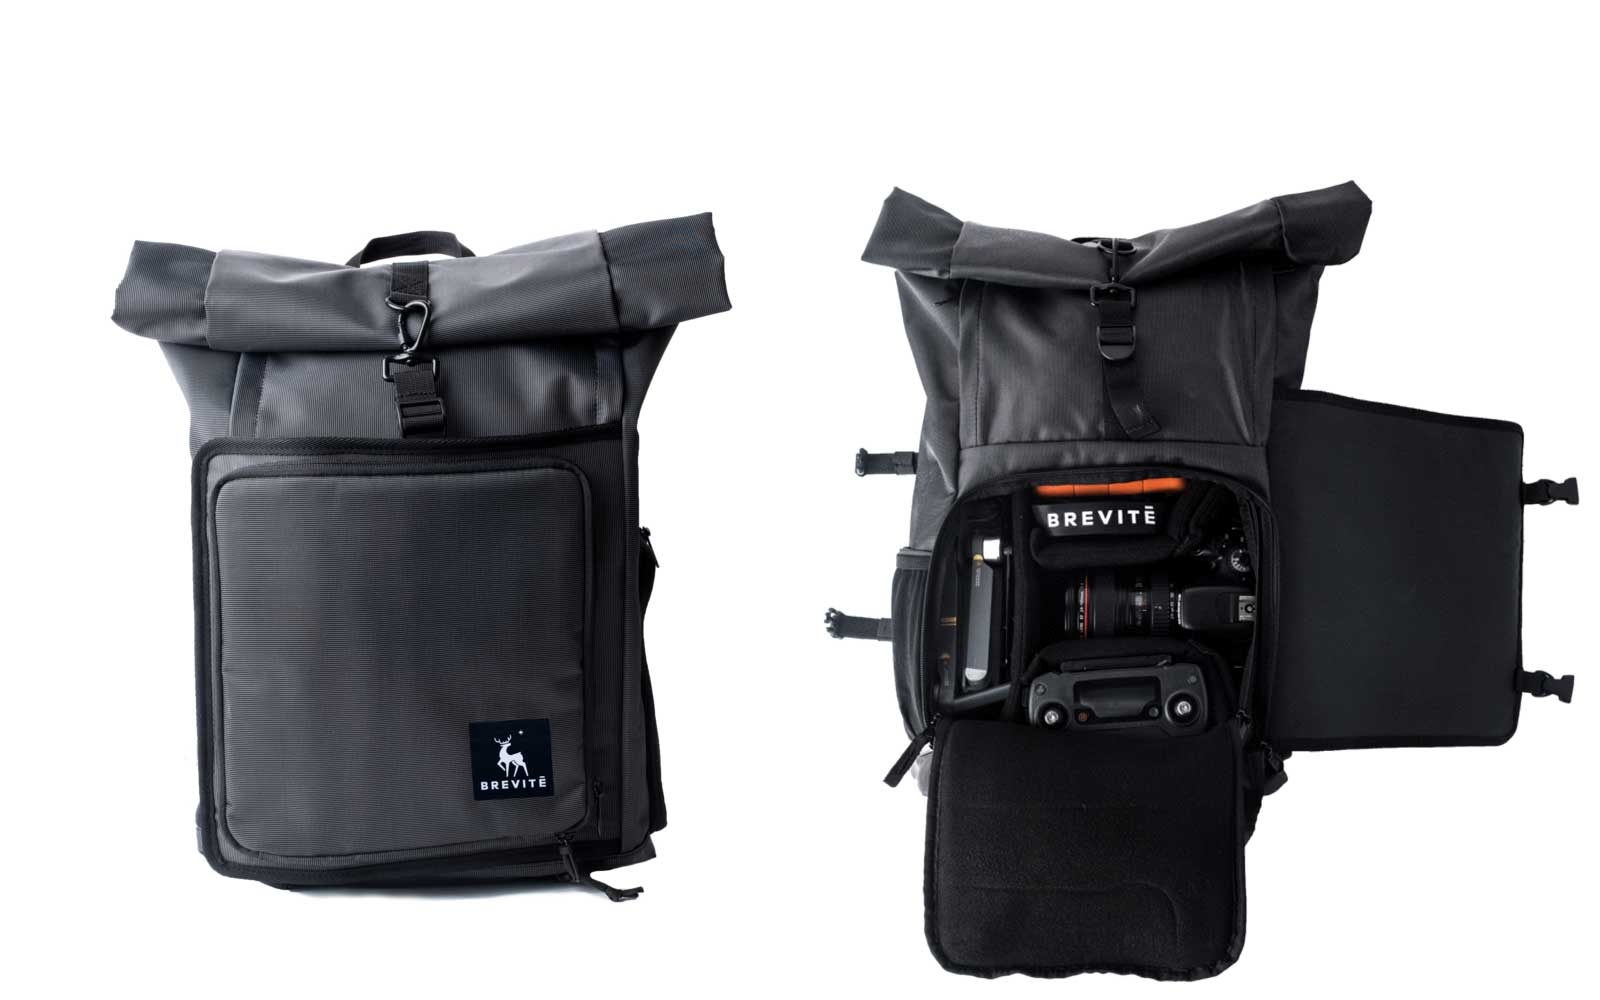 Brevité Backpack Camera Roll Top